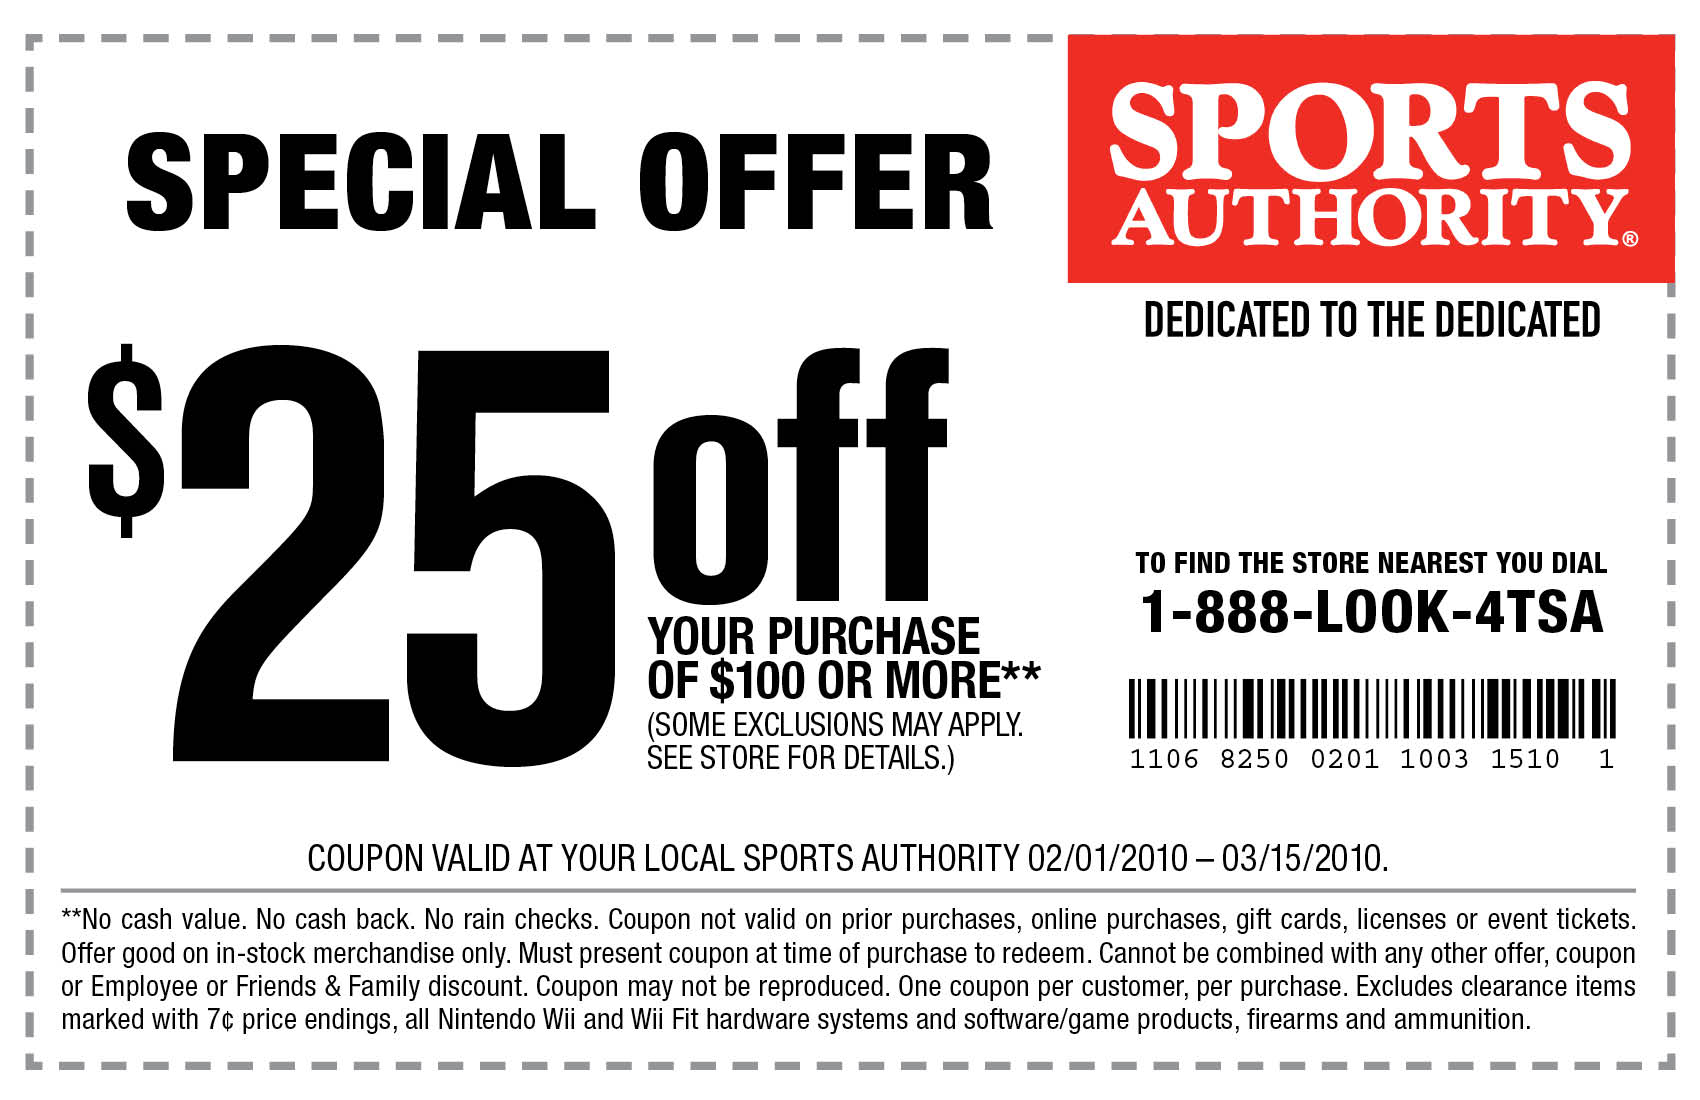 Latest Printable Coupons. Coupons  Printable  Grocery  CVS  Express  Sports Authority